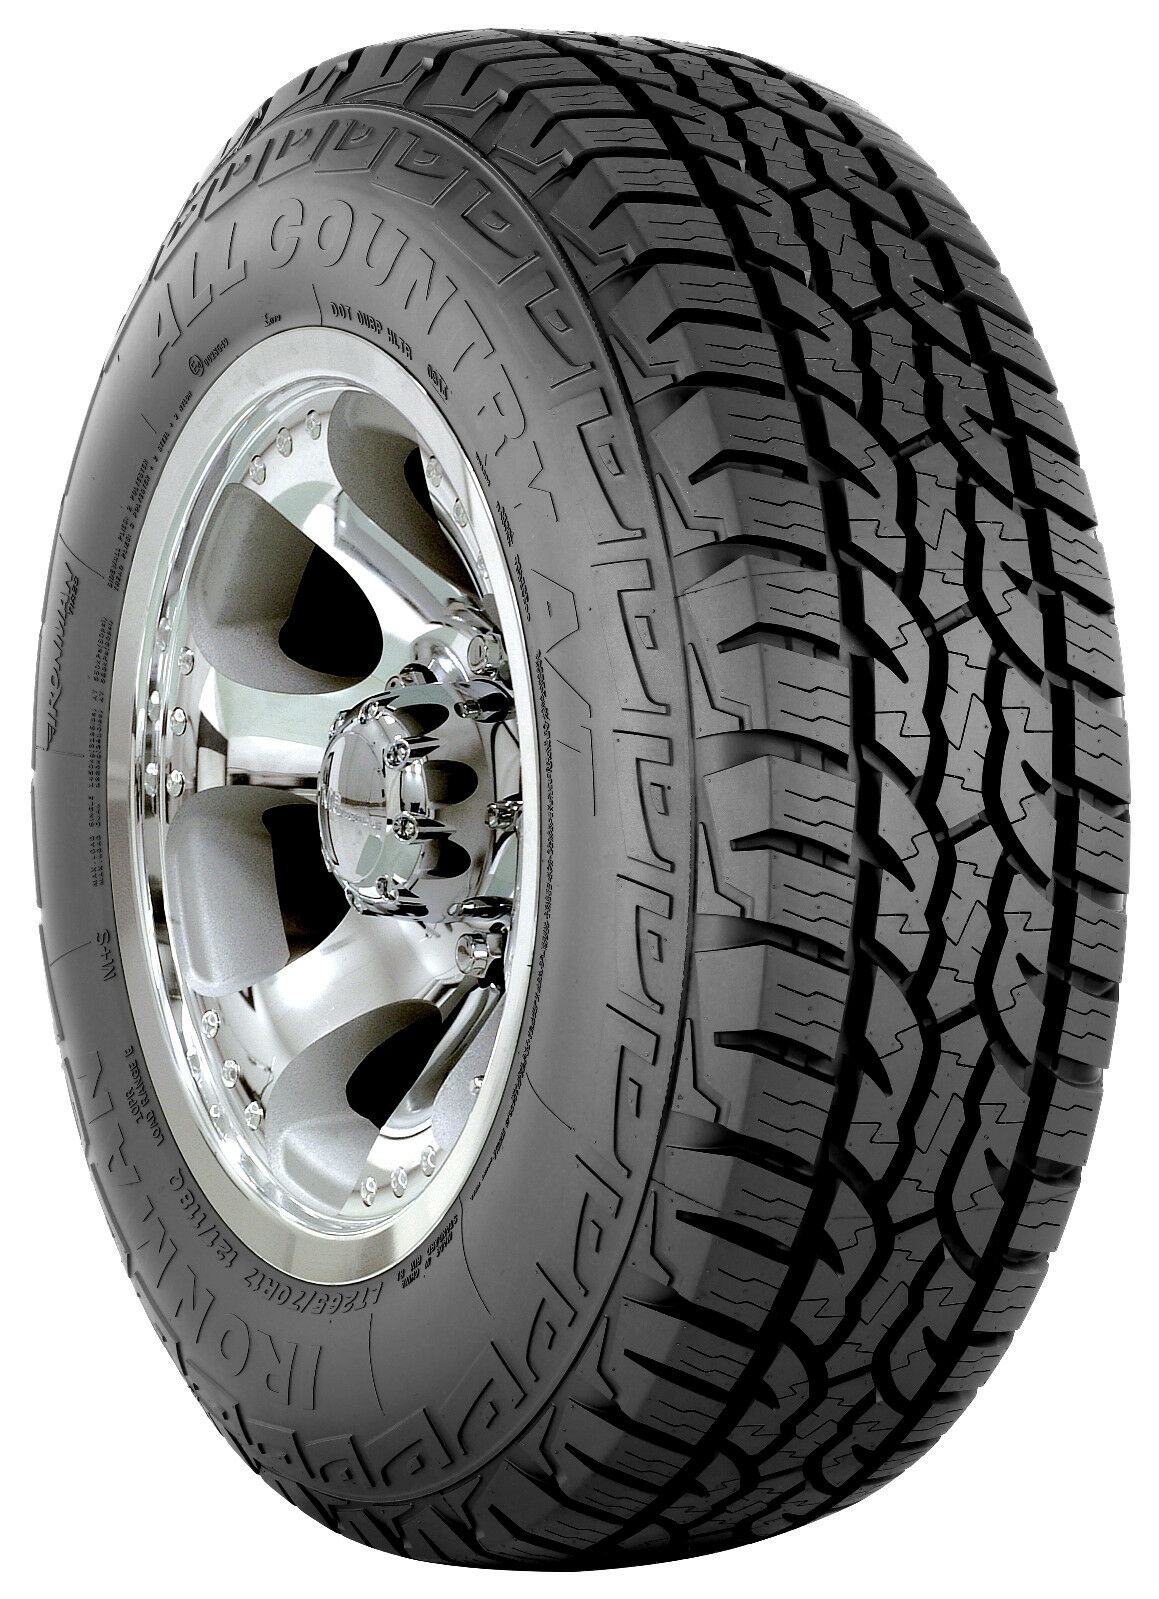 New Tire Tread Depth >> 1 NEW TIRE(S) 245/70R16XL Ironman All Country A/T 245/70/16 2457016